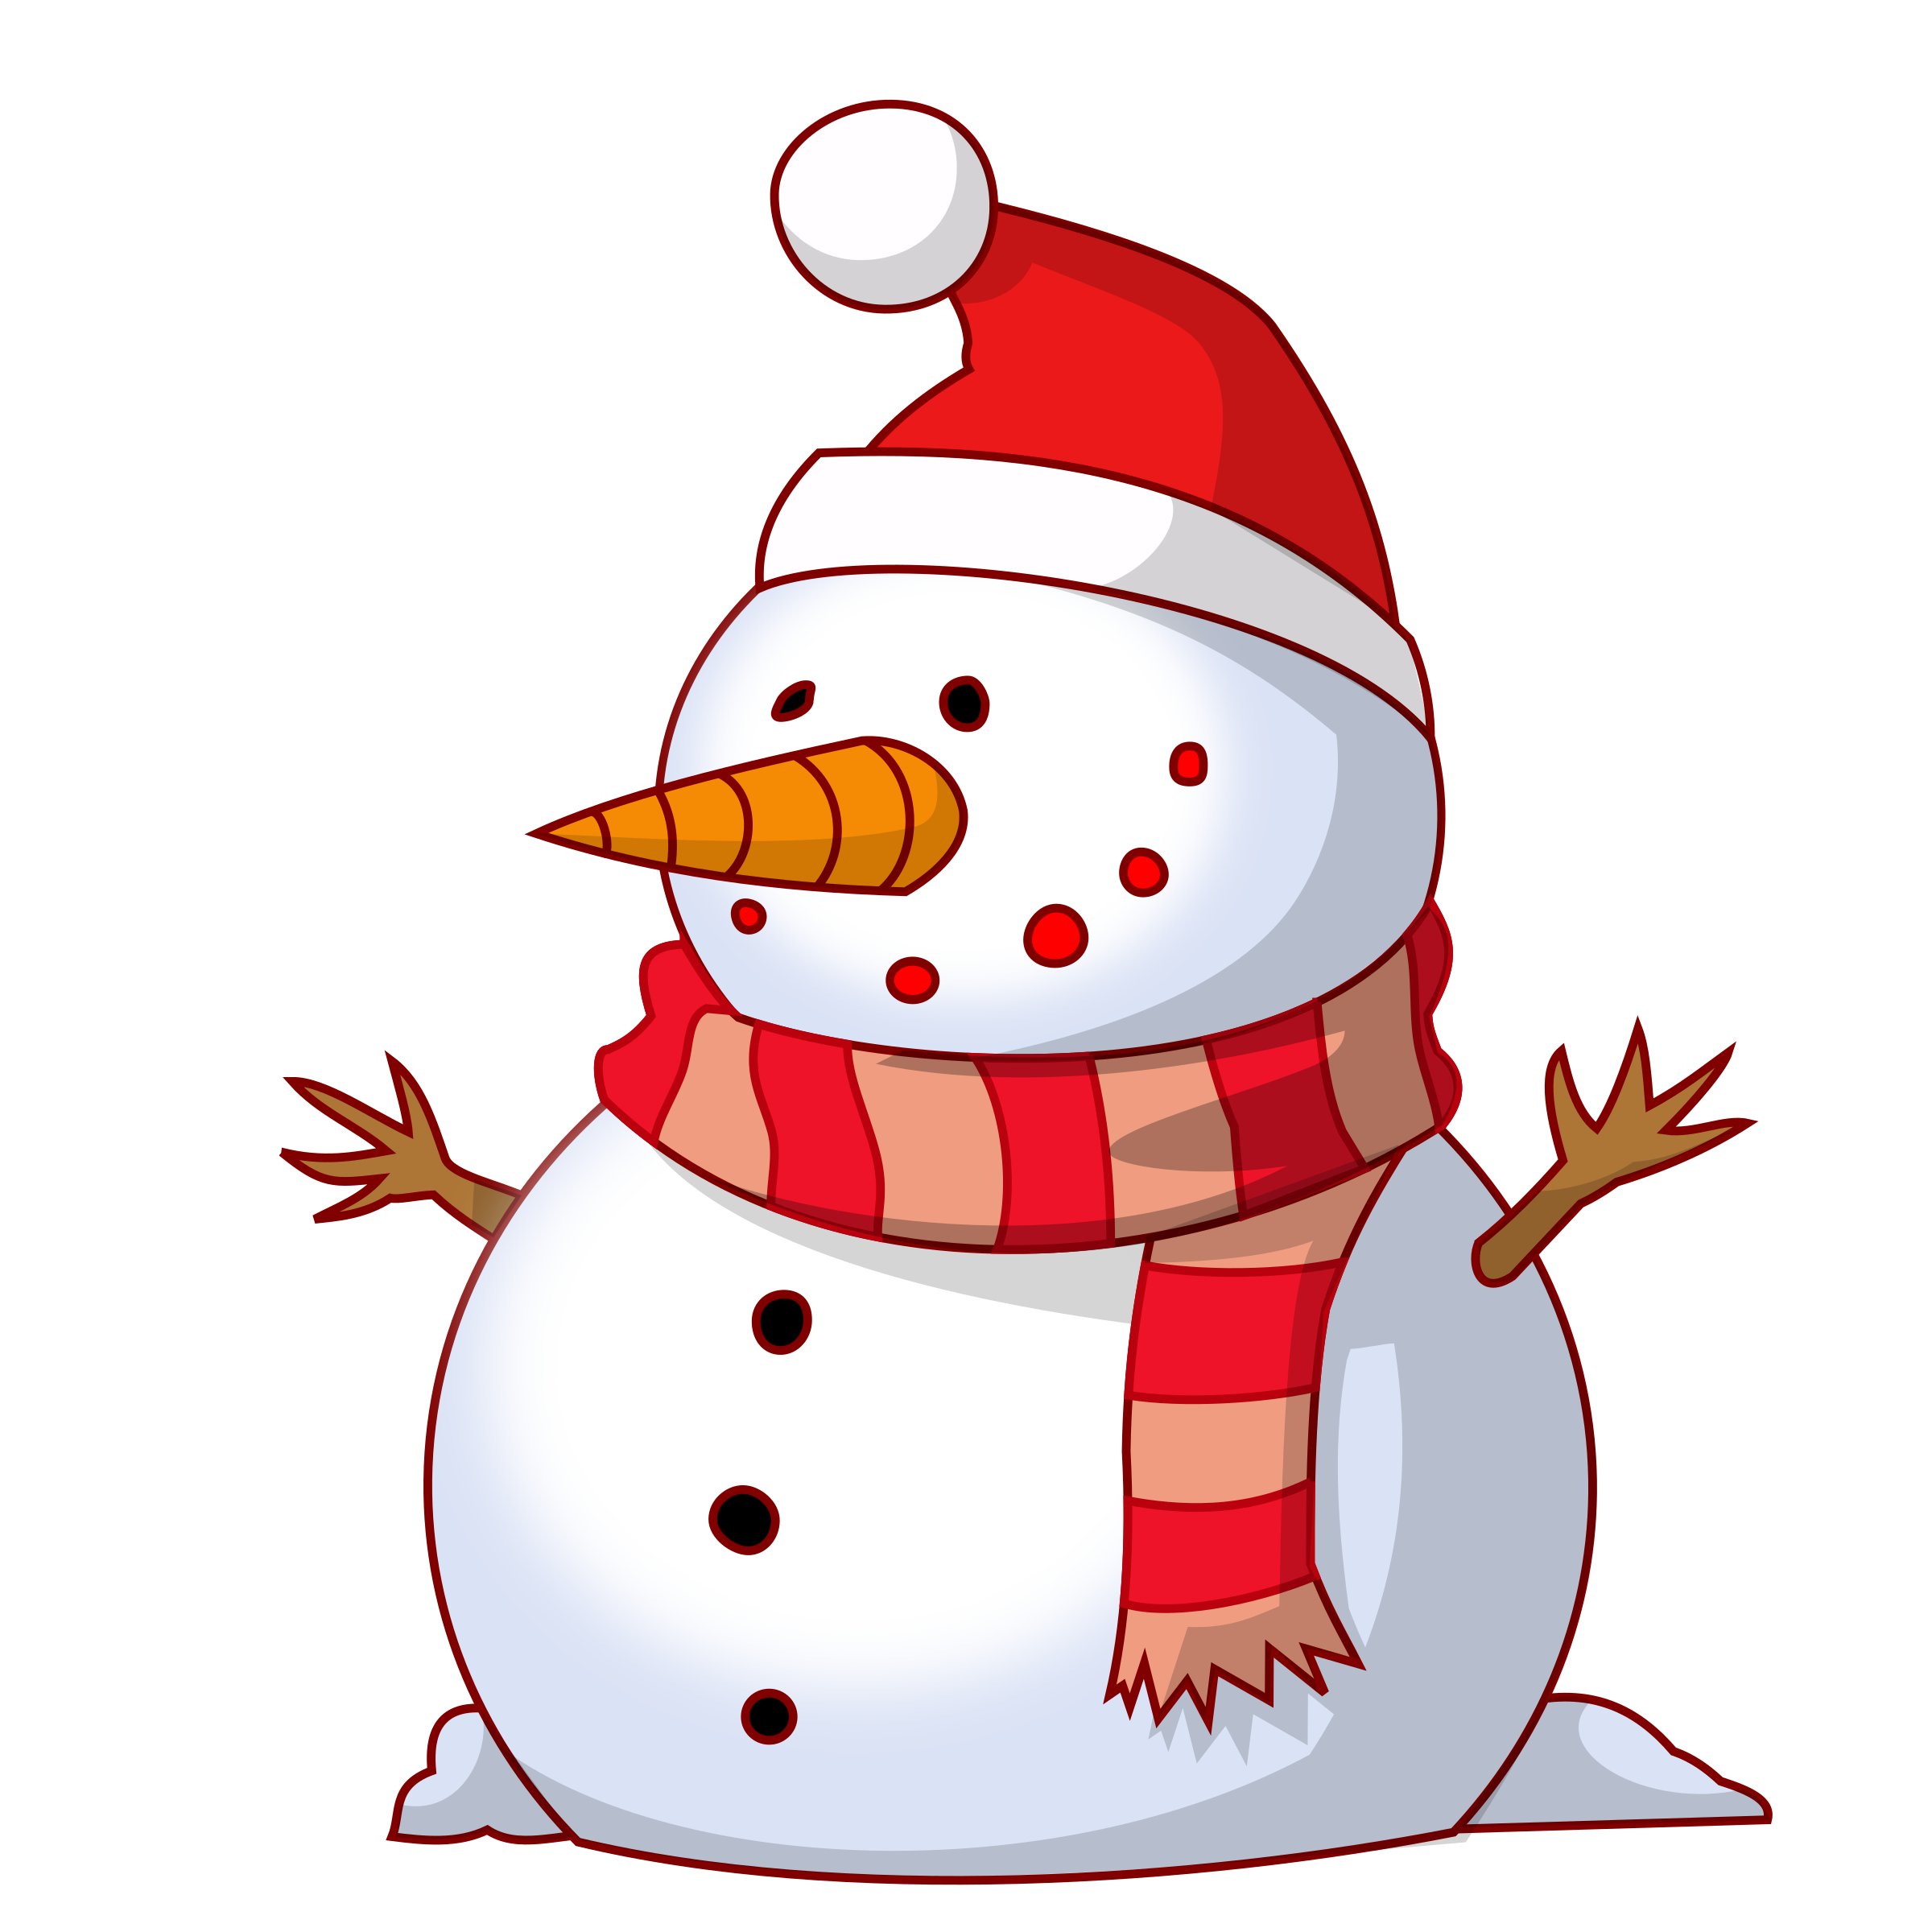 Drawing big image png. Snowman clipart